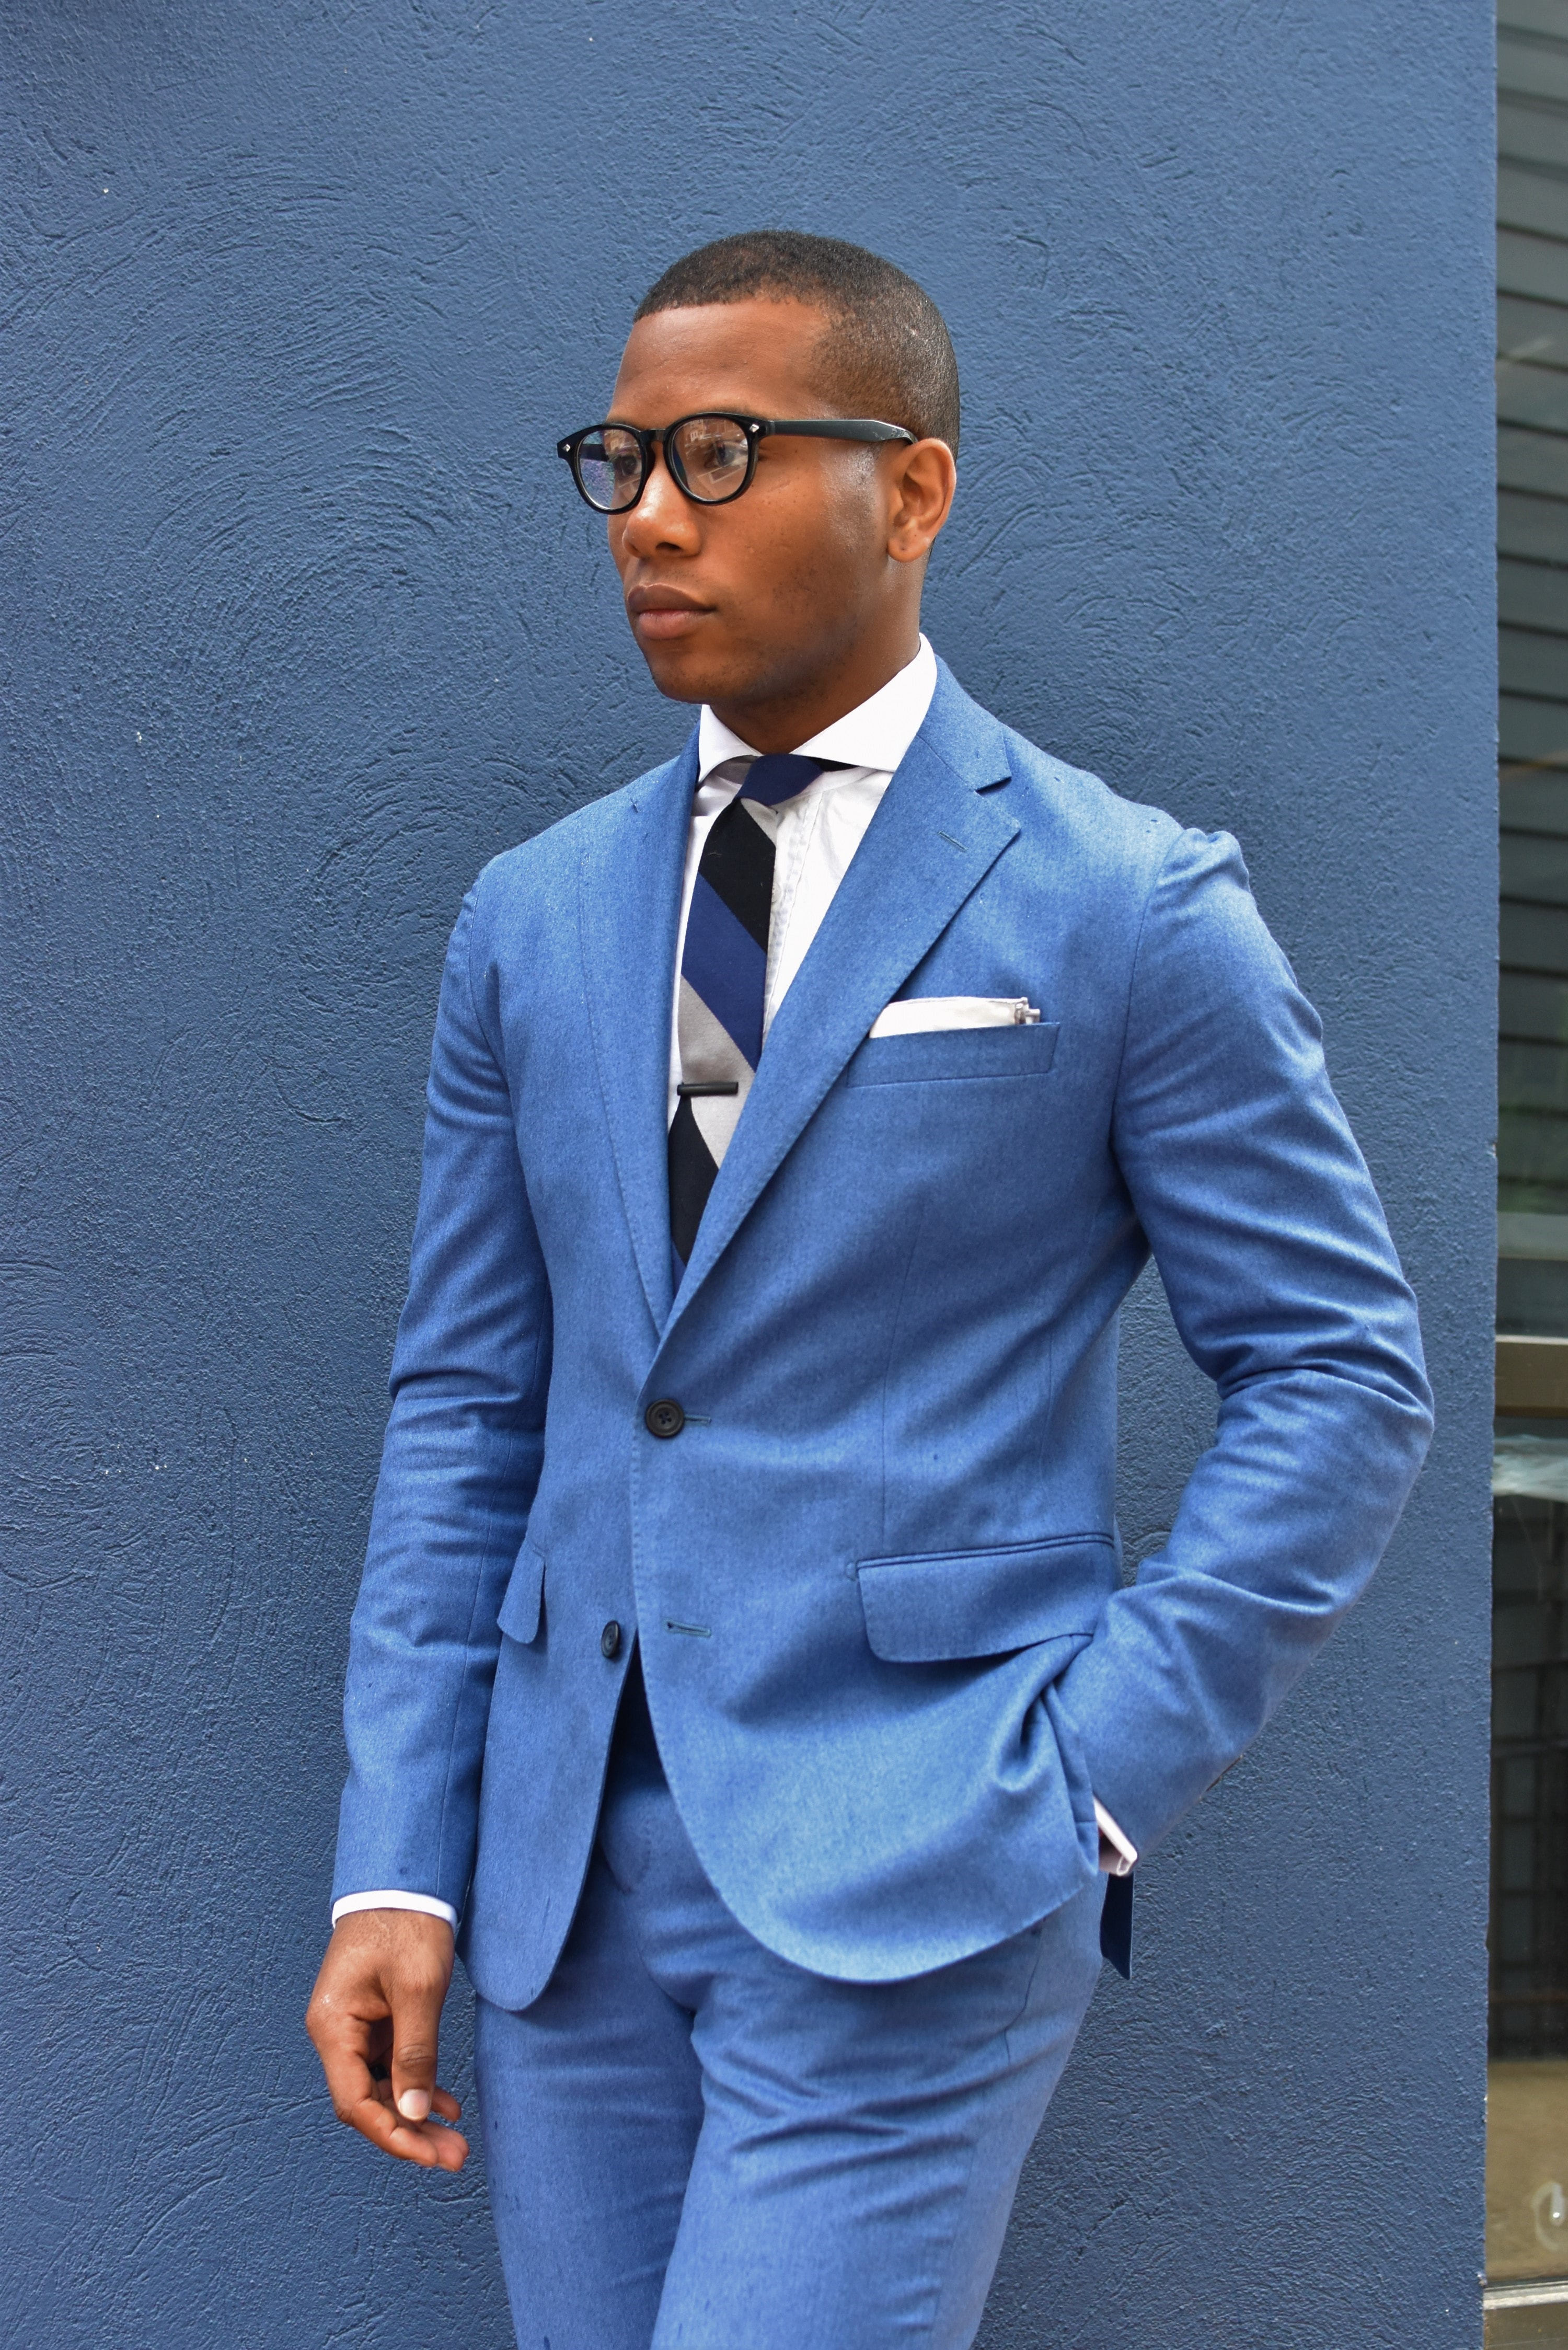 Sabir M. Peele of Men's Style Pro Hardy Amies Periwinkle Blue Suit